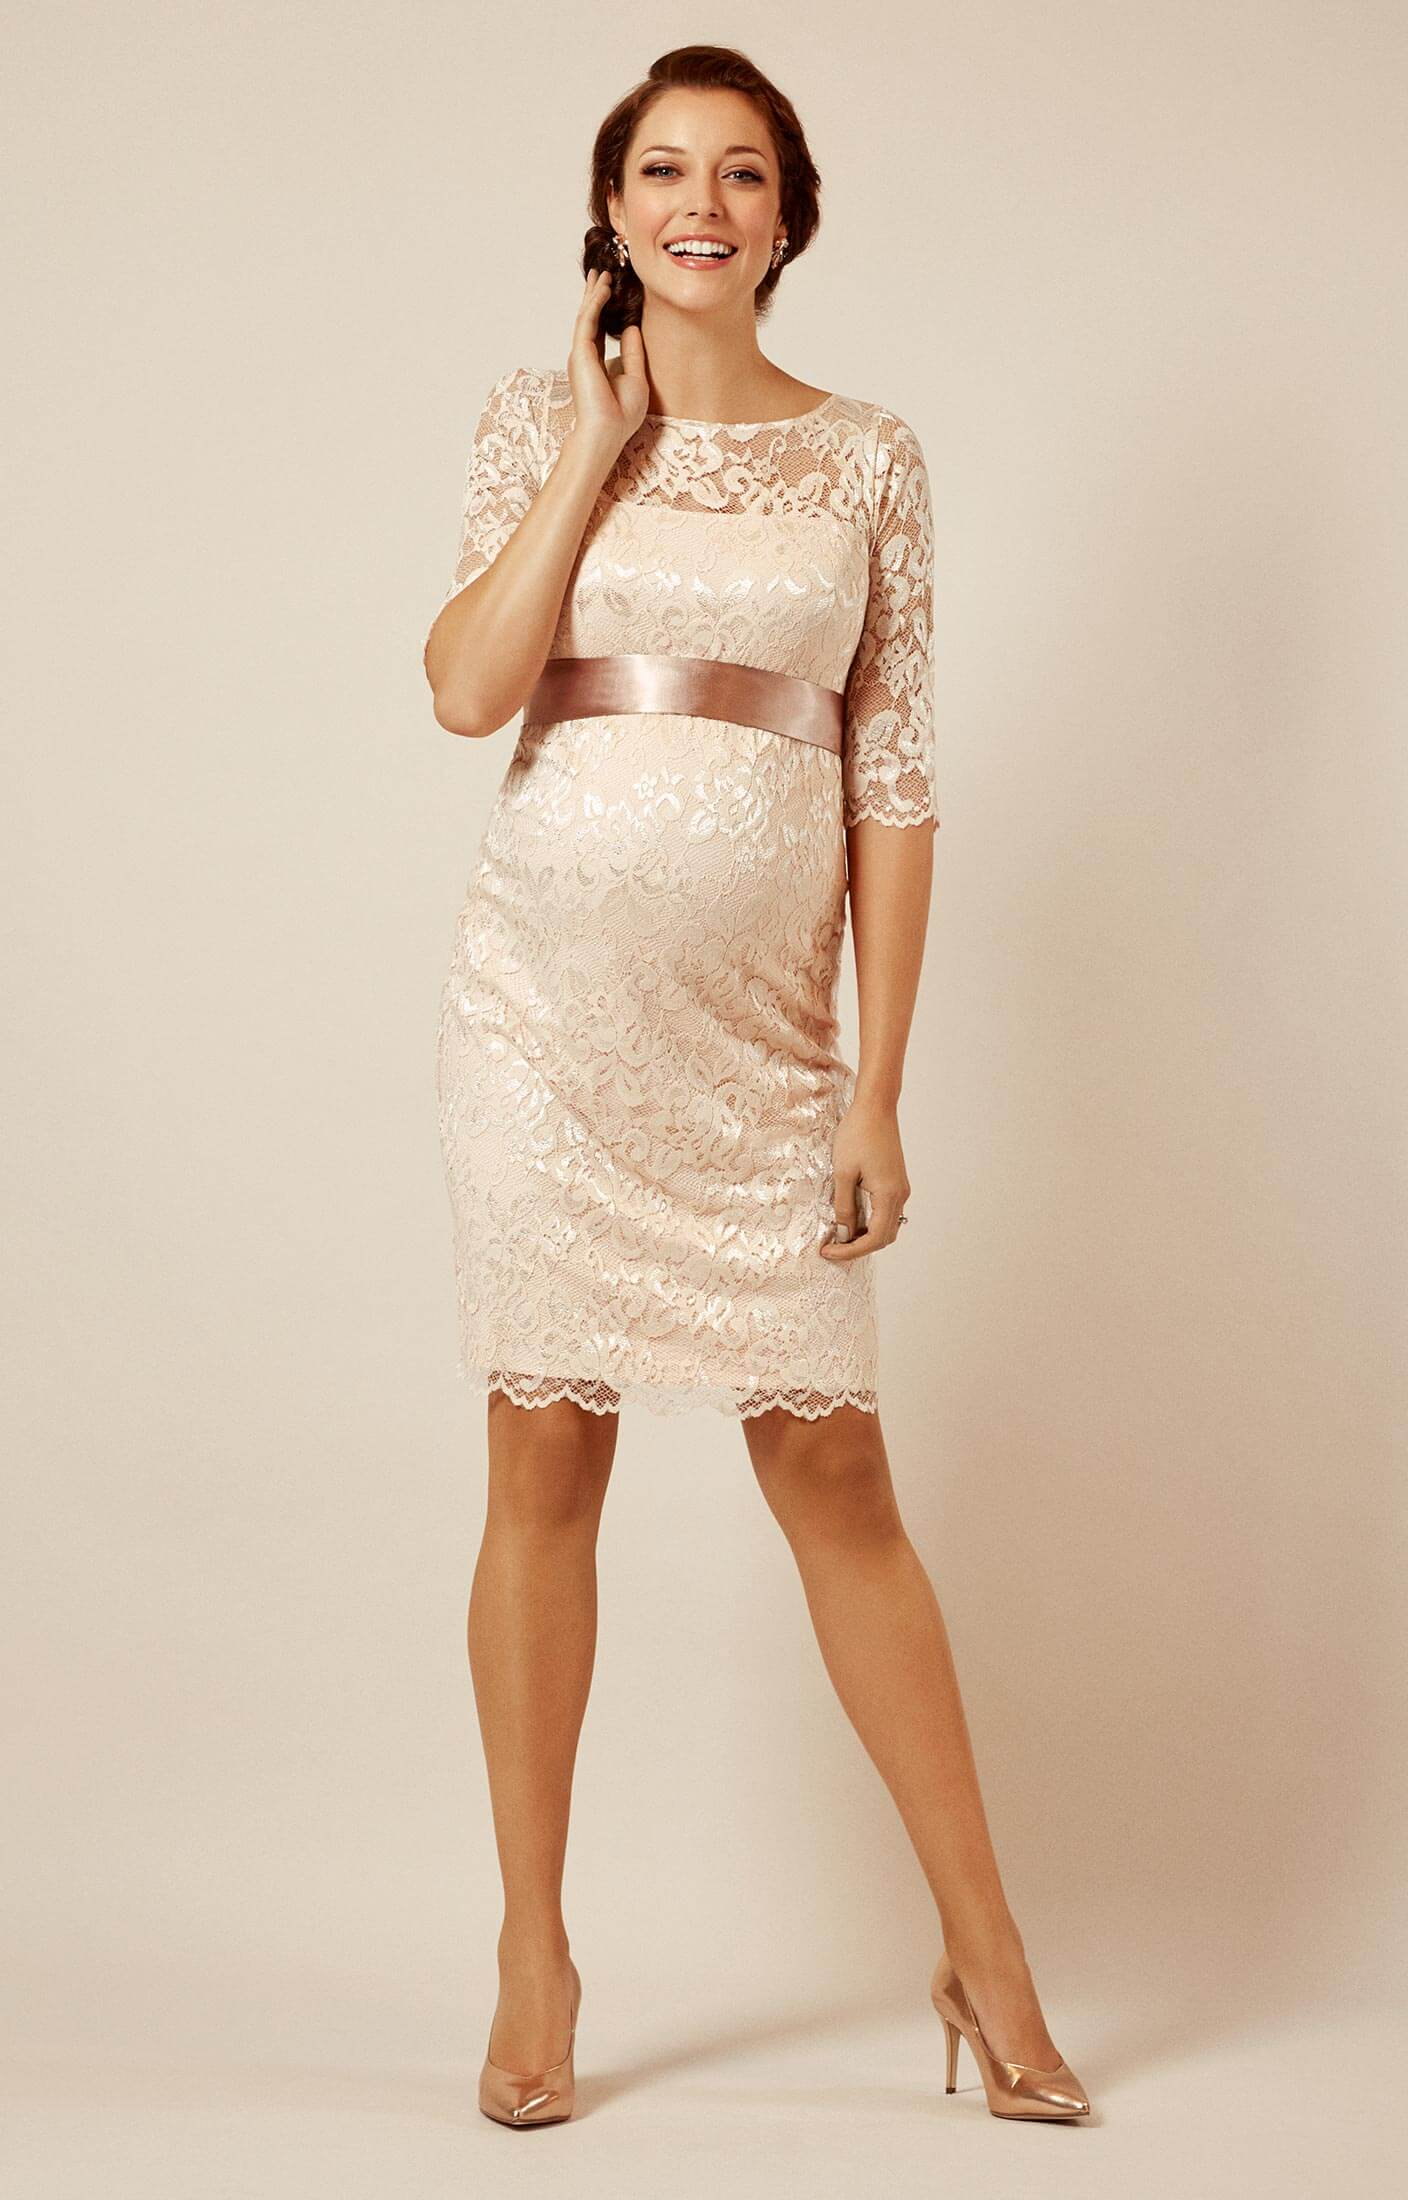 Amelia Lace Maternity Dress Short Pearl Blush Maternity Wedding Dresses Evening Wear And Party Clothes By Tiffany Rose